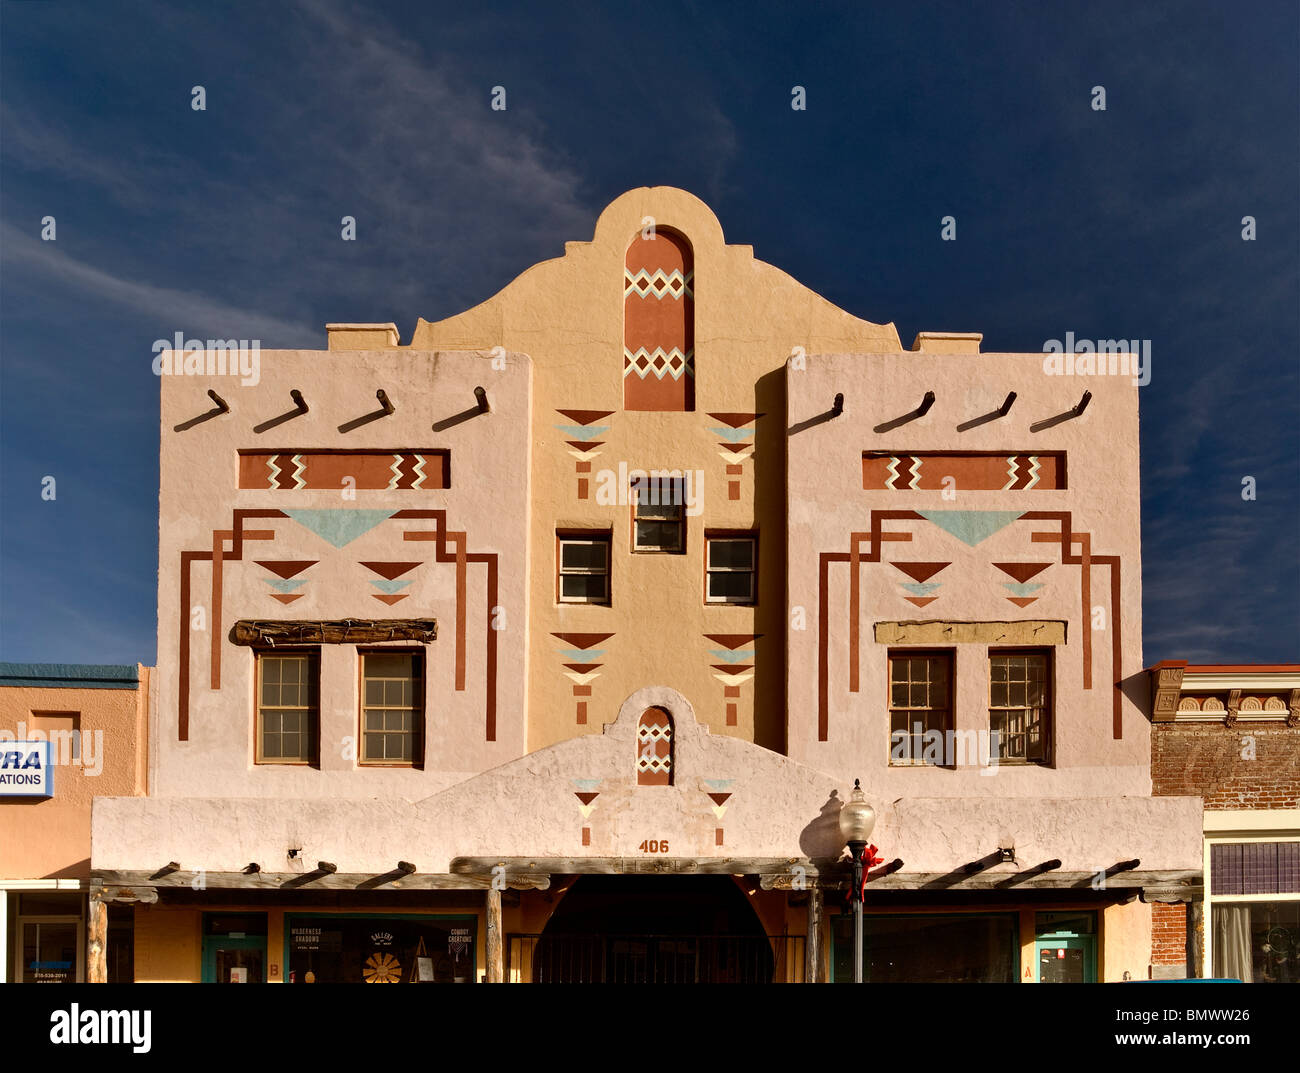 Historic building with motifs inspired by Indian designs at Bullard Street in Silver City, New Mexico, USA - Stock Image